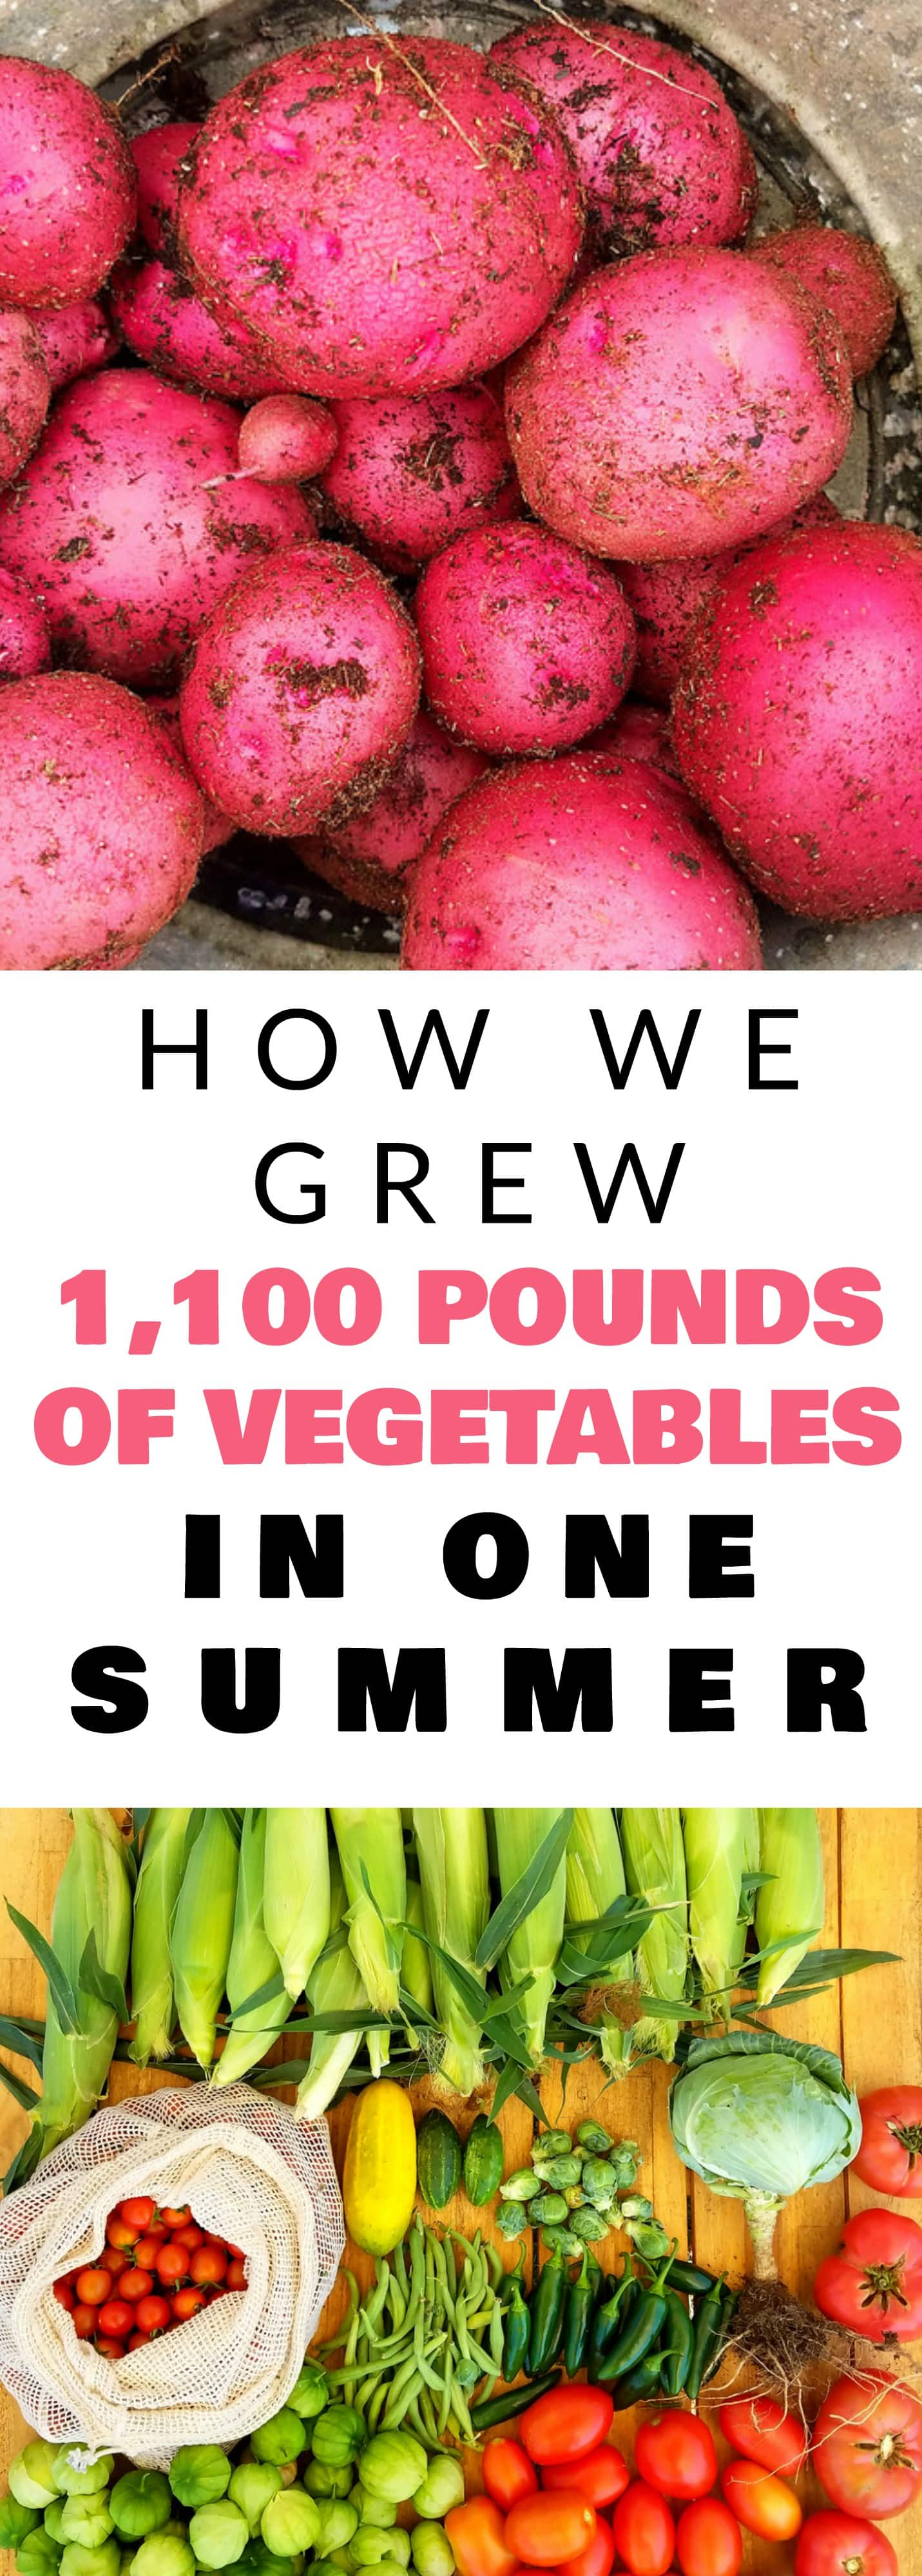 How we grew over 1,100 pounds of vegetables in one Summer! Learn how to grow your own food to last you all year long! Start your own vegetable garden now!